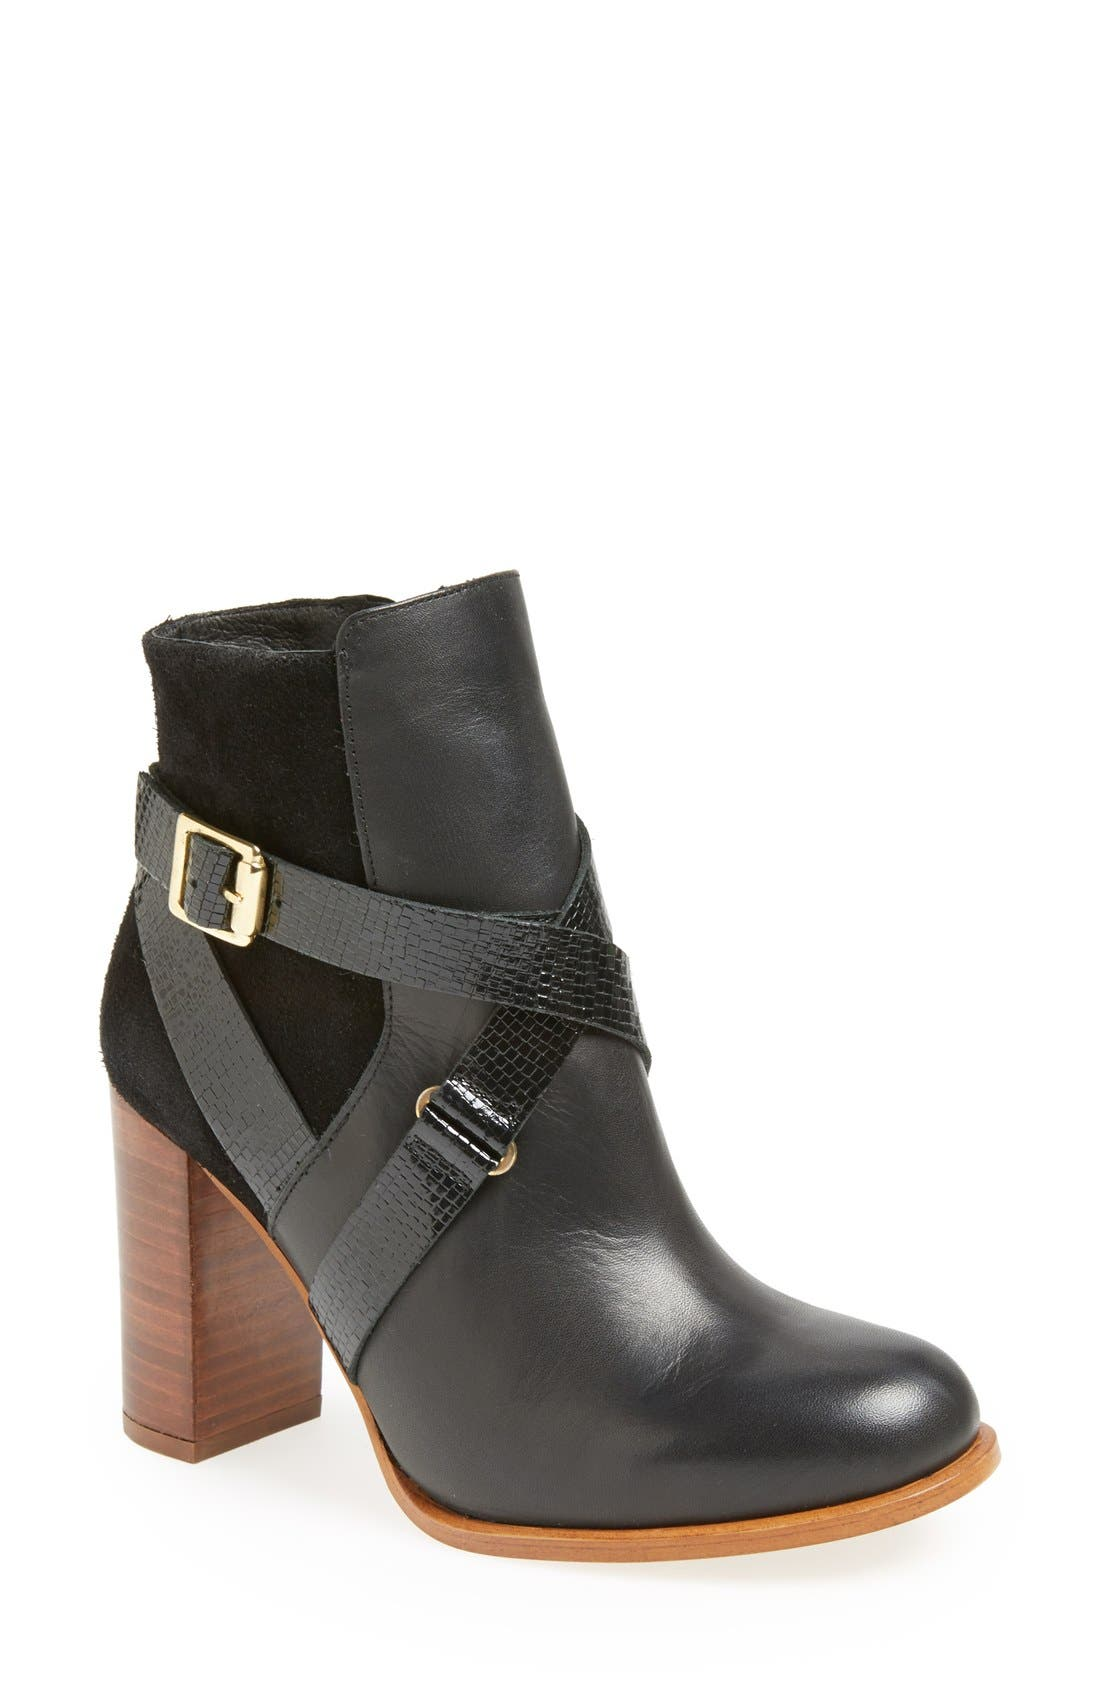 Alternate Image 1 Selected - Topshop 'Aroma' Ankle Boot (Women)